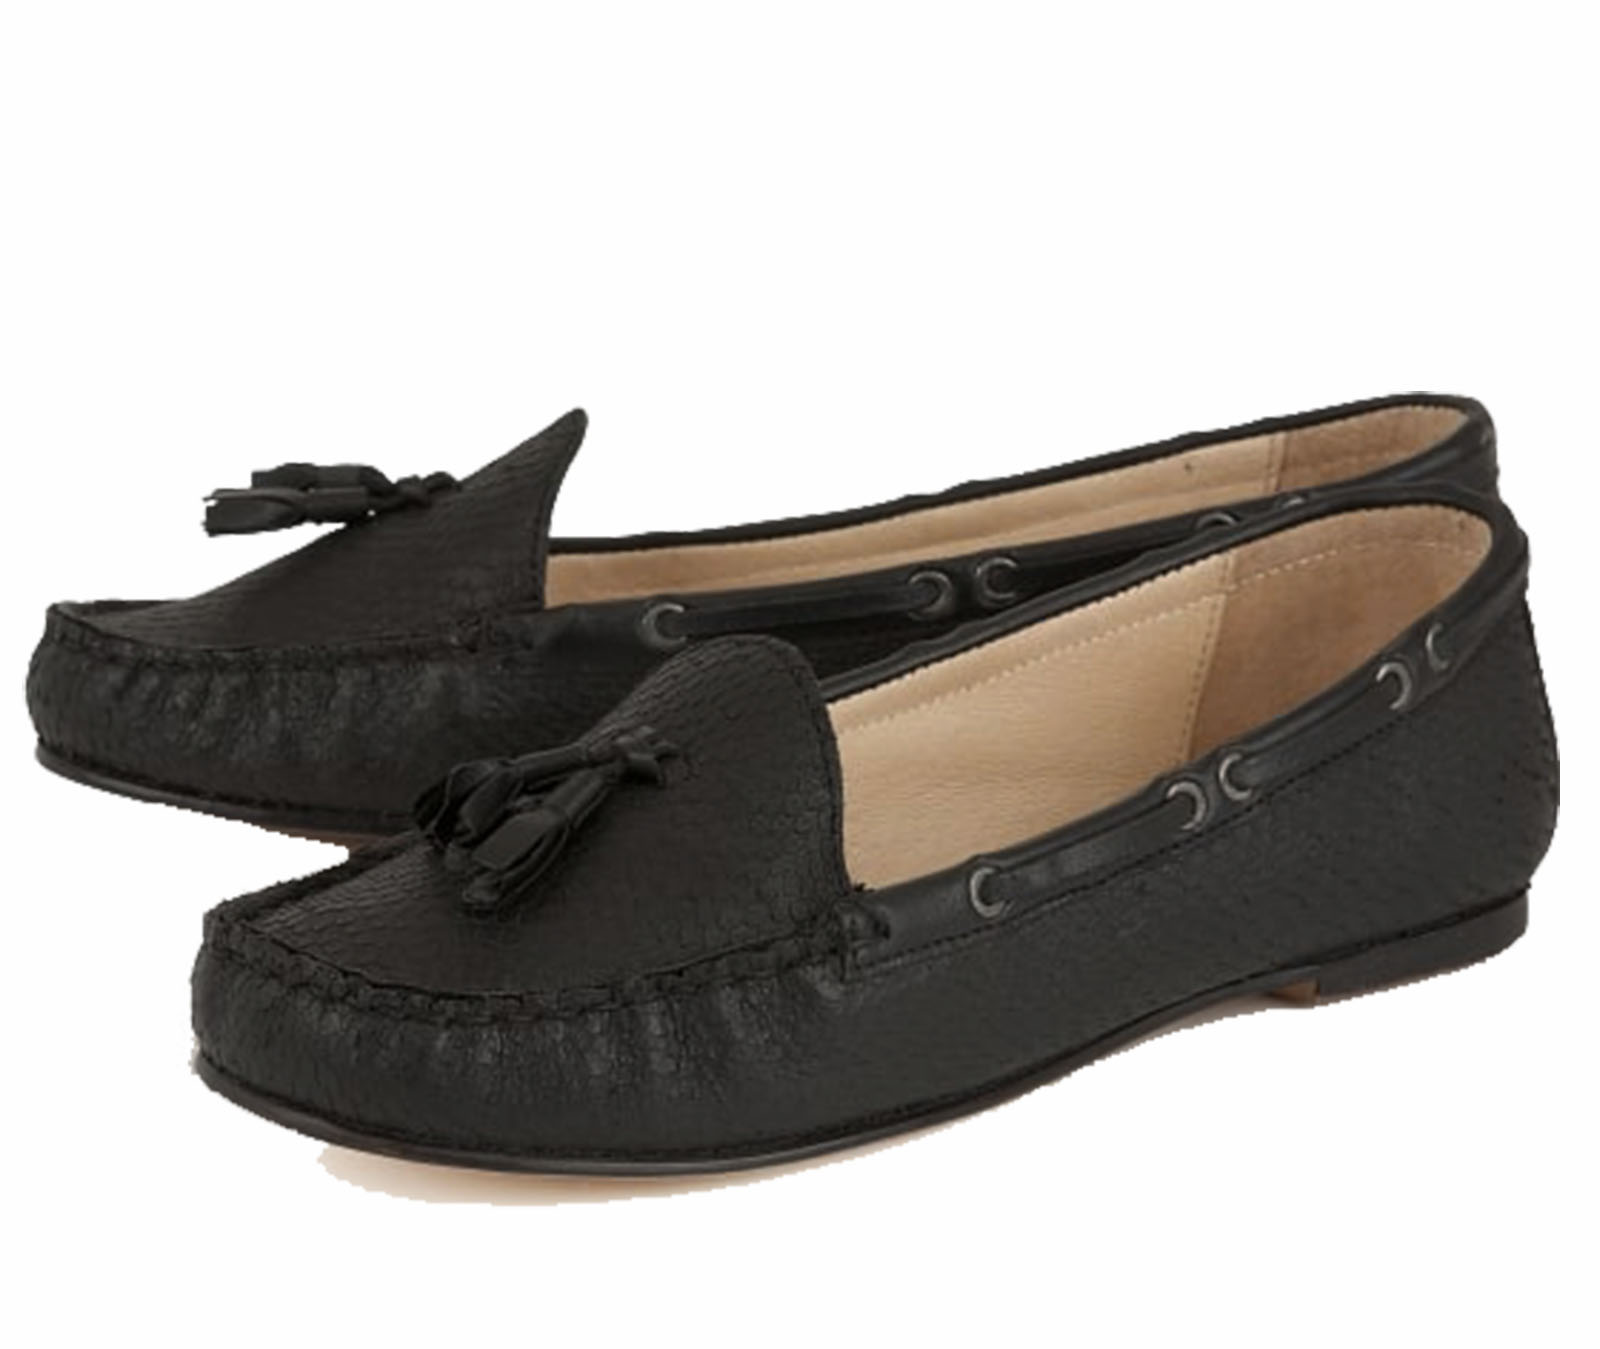 544e10aca5e Sentinel LADIES RAVEL ELOY FLAT LEATHER BLACK SLIP-ON MOCCASIN LOAFERS SHOES  SIZES 3-8